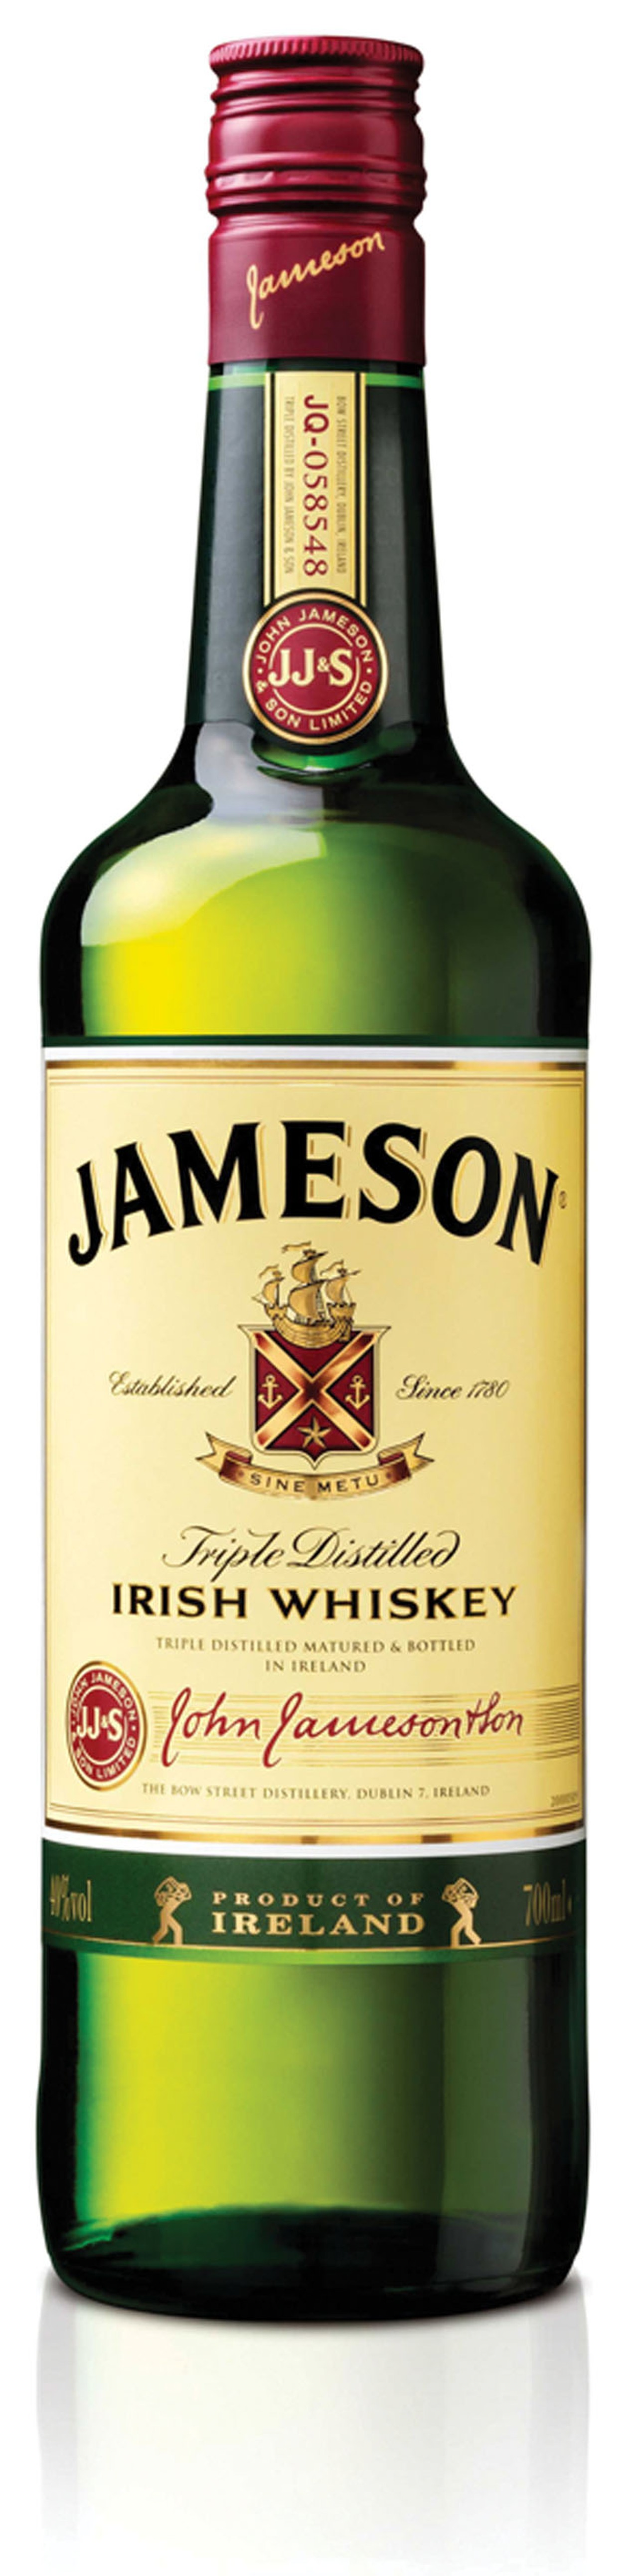 A special edition of jamesons blended irish whiskey